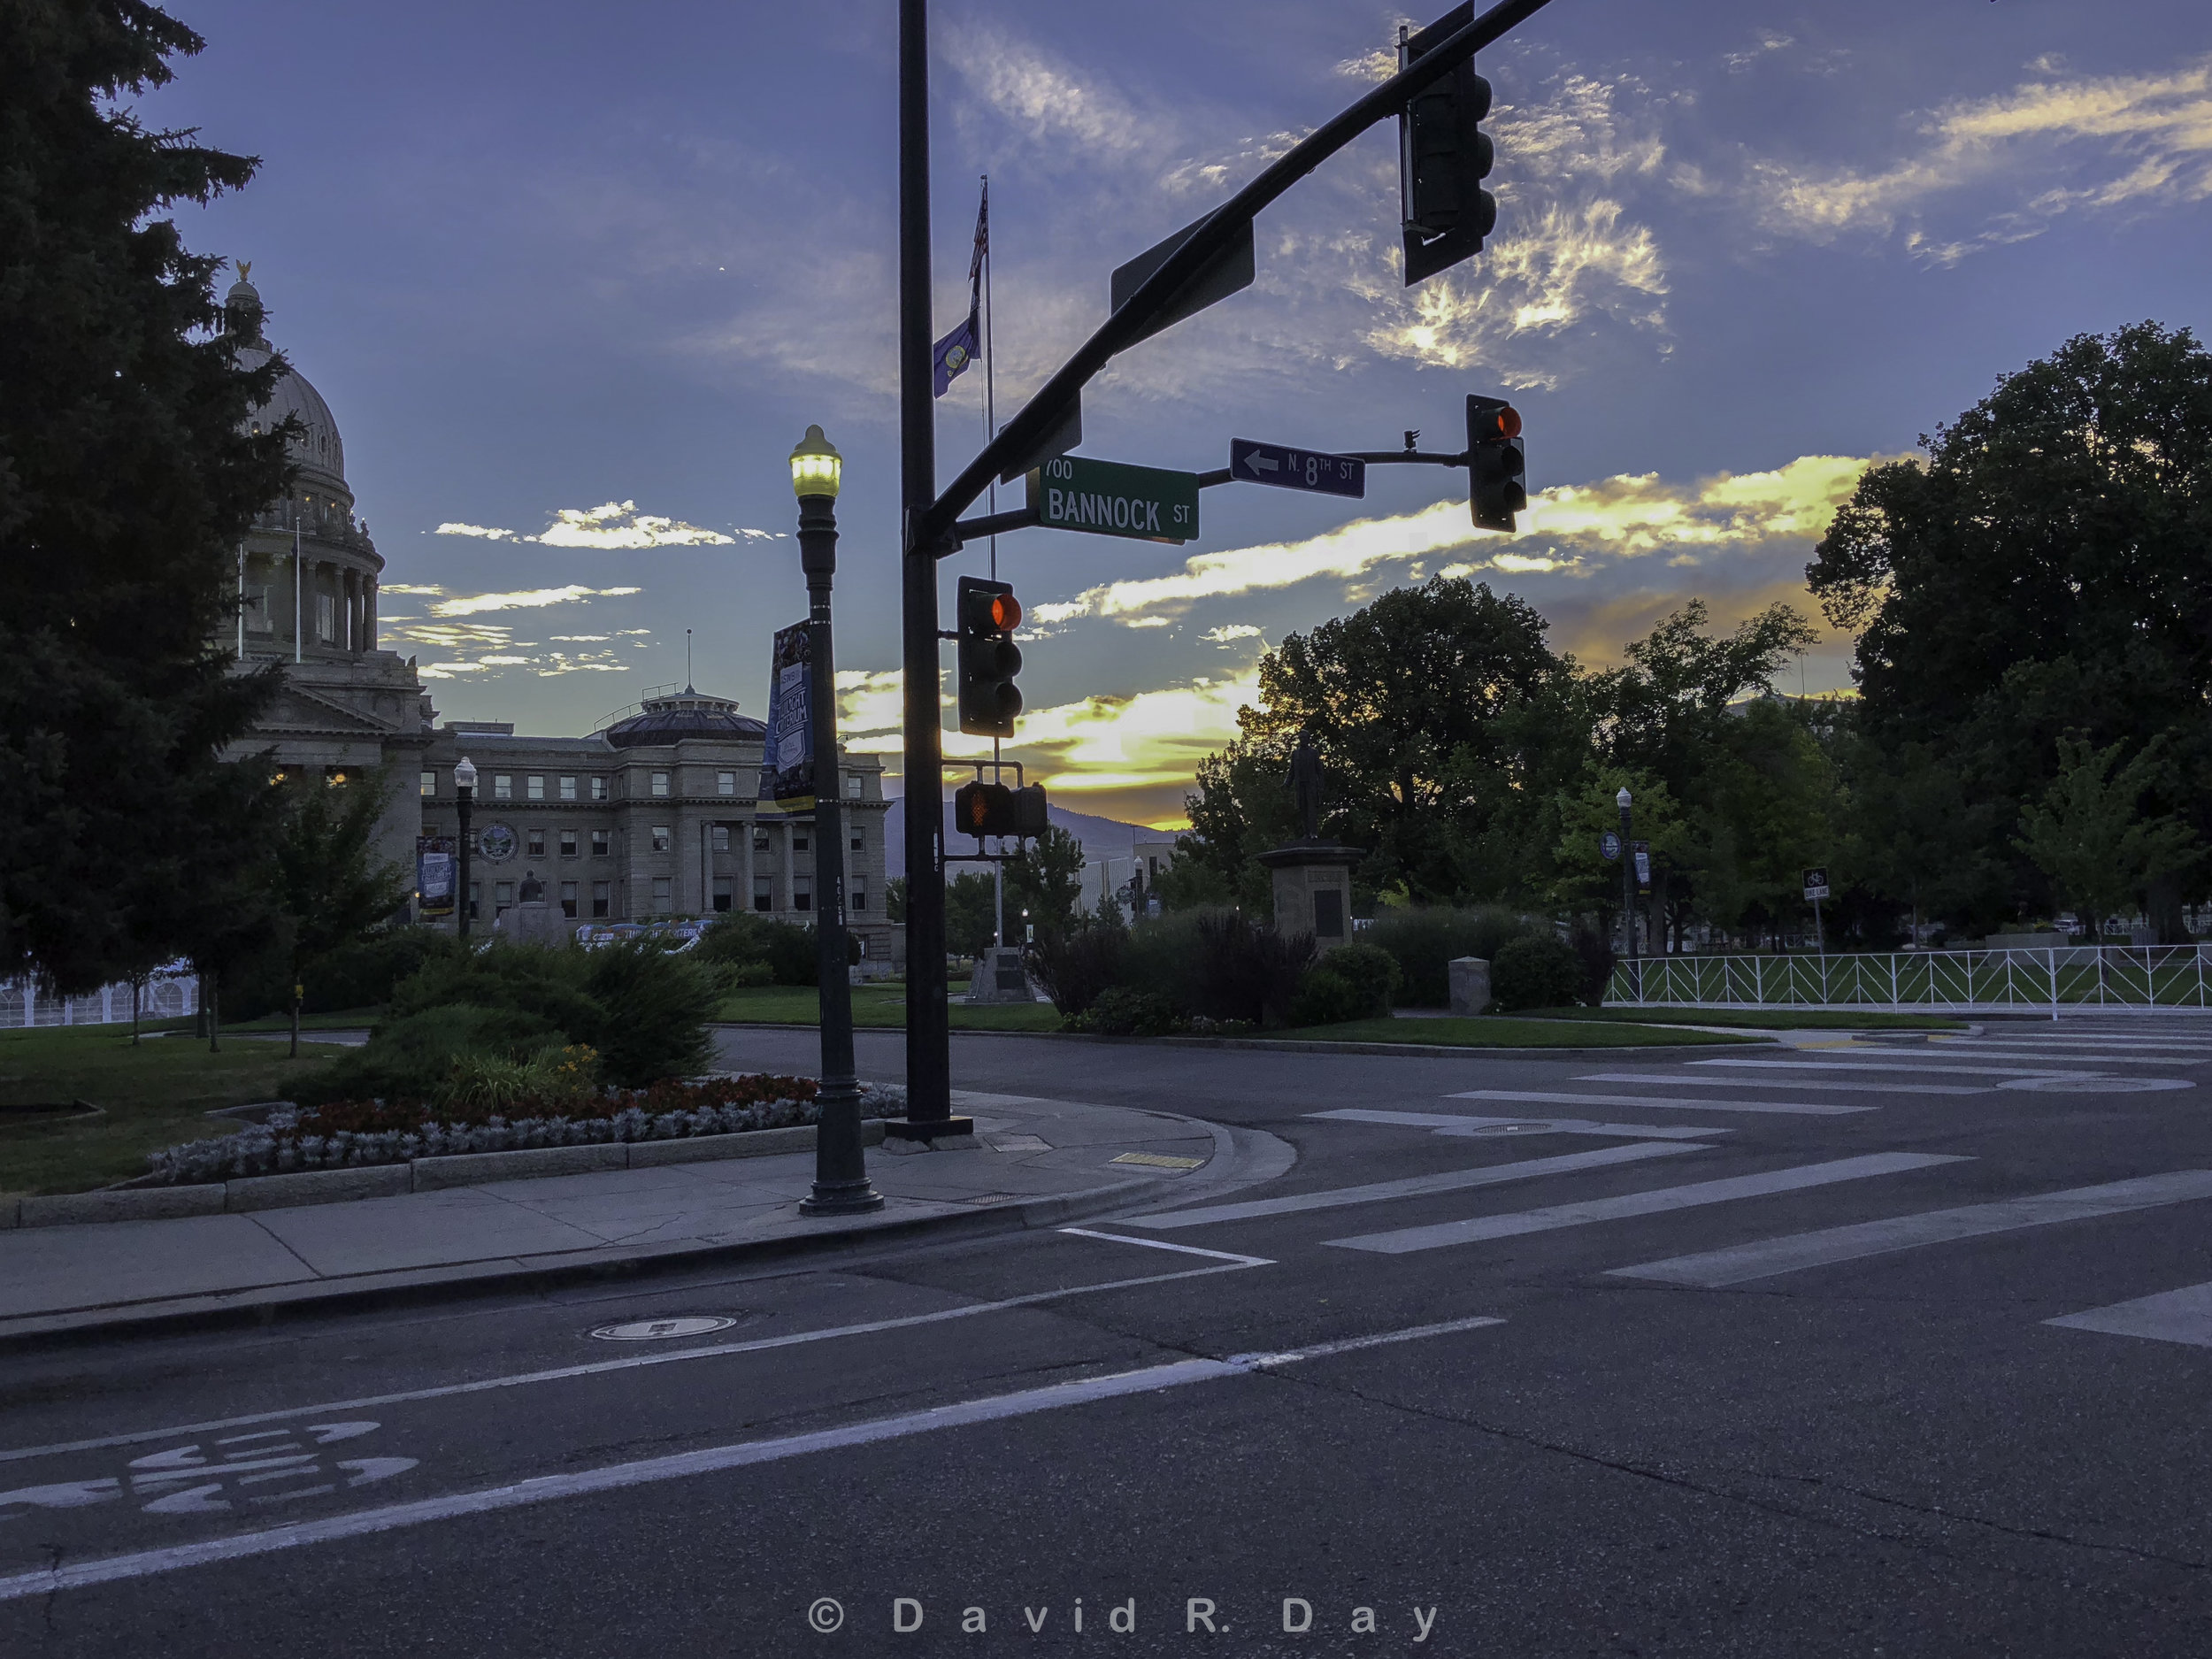 So much good here. You can see what I was going for can't you. Great sky and one of my favorite sunbjects, the Idaho State Capital.  Why doesn't it work, to much clutter. To many poles, to many trees, not quite enought light.  Now? I would like walk arcross the street and get something better.